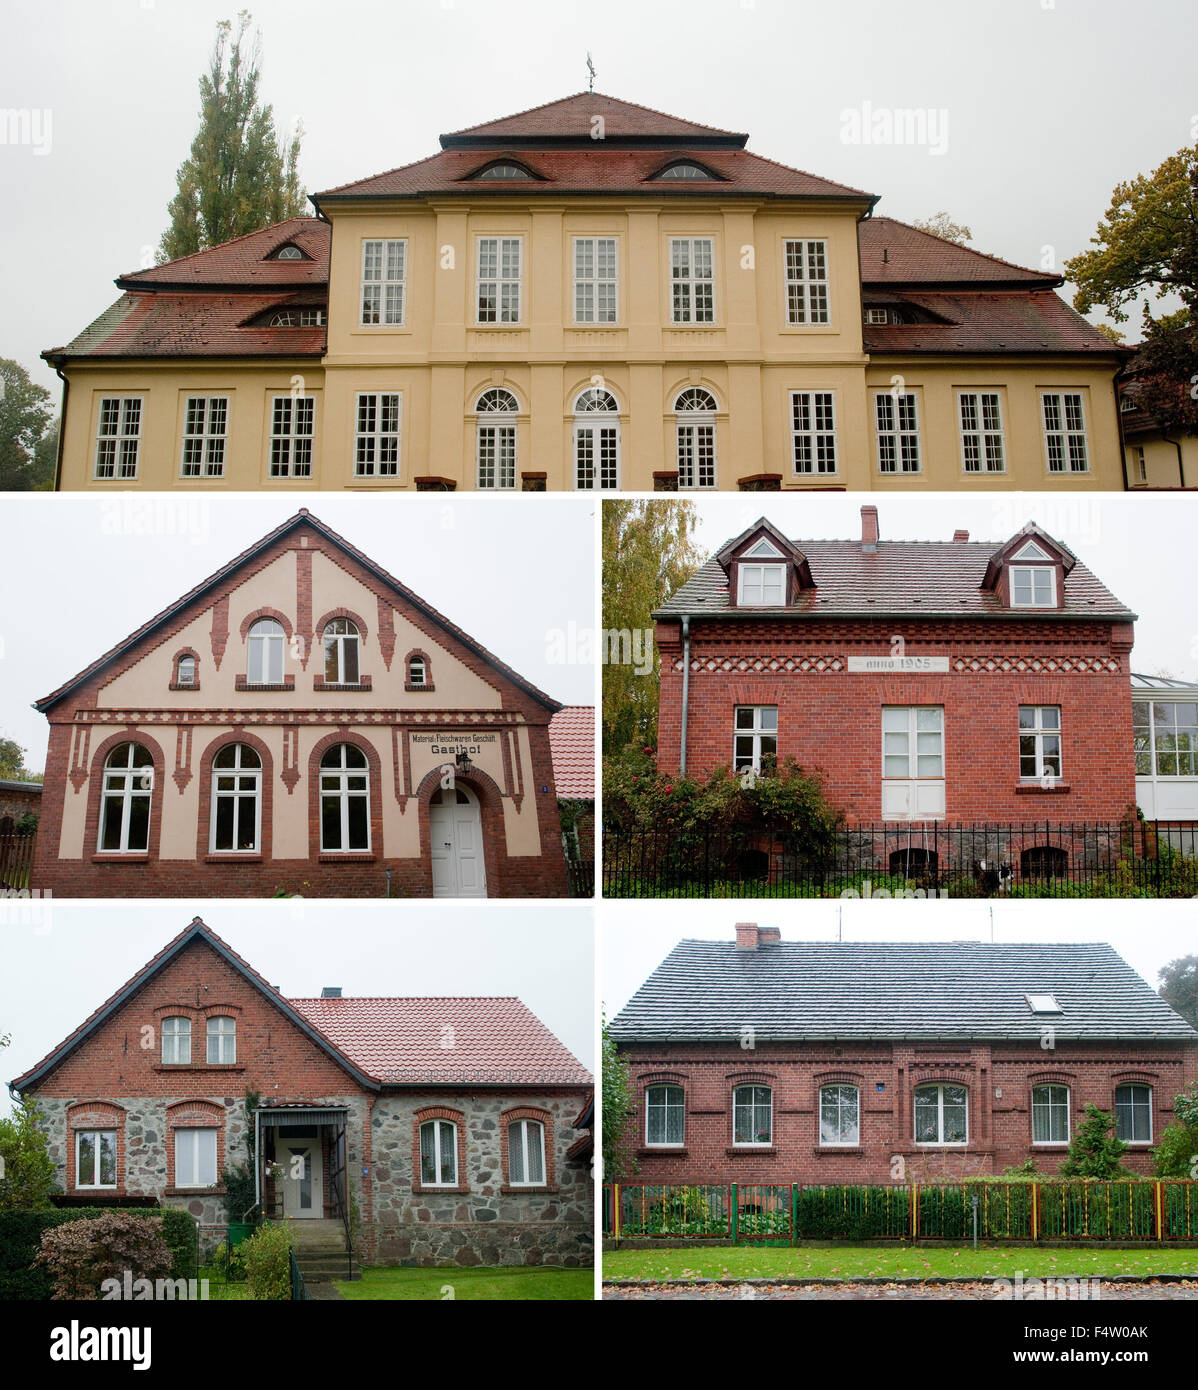 Sauen, Germany. 20th Oct, 2015. COMBO - A composite picture of five individual pictures shows the fronts of historical - Stock Image